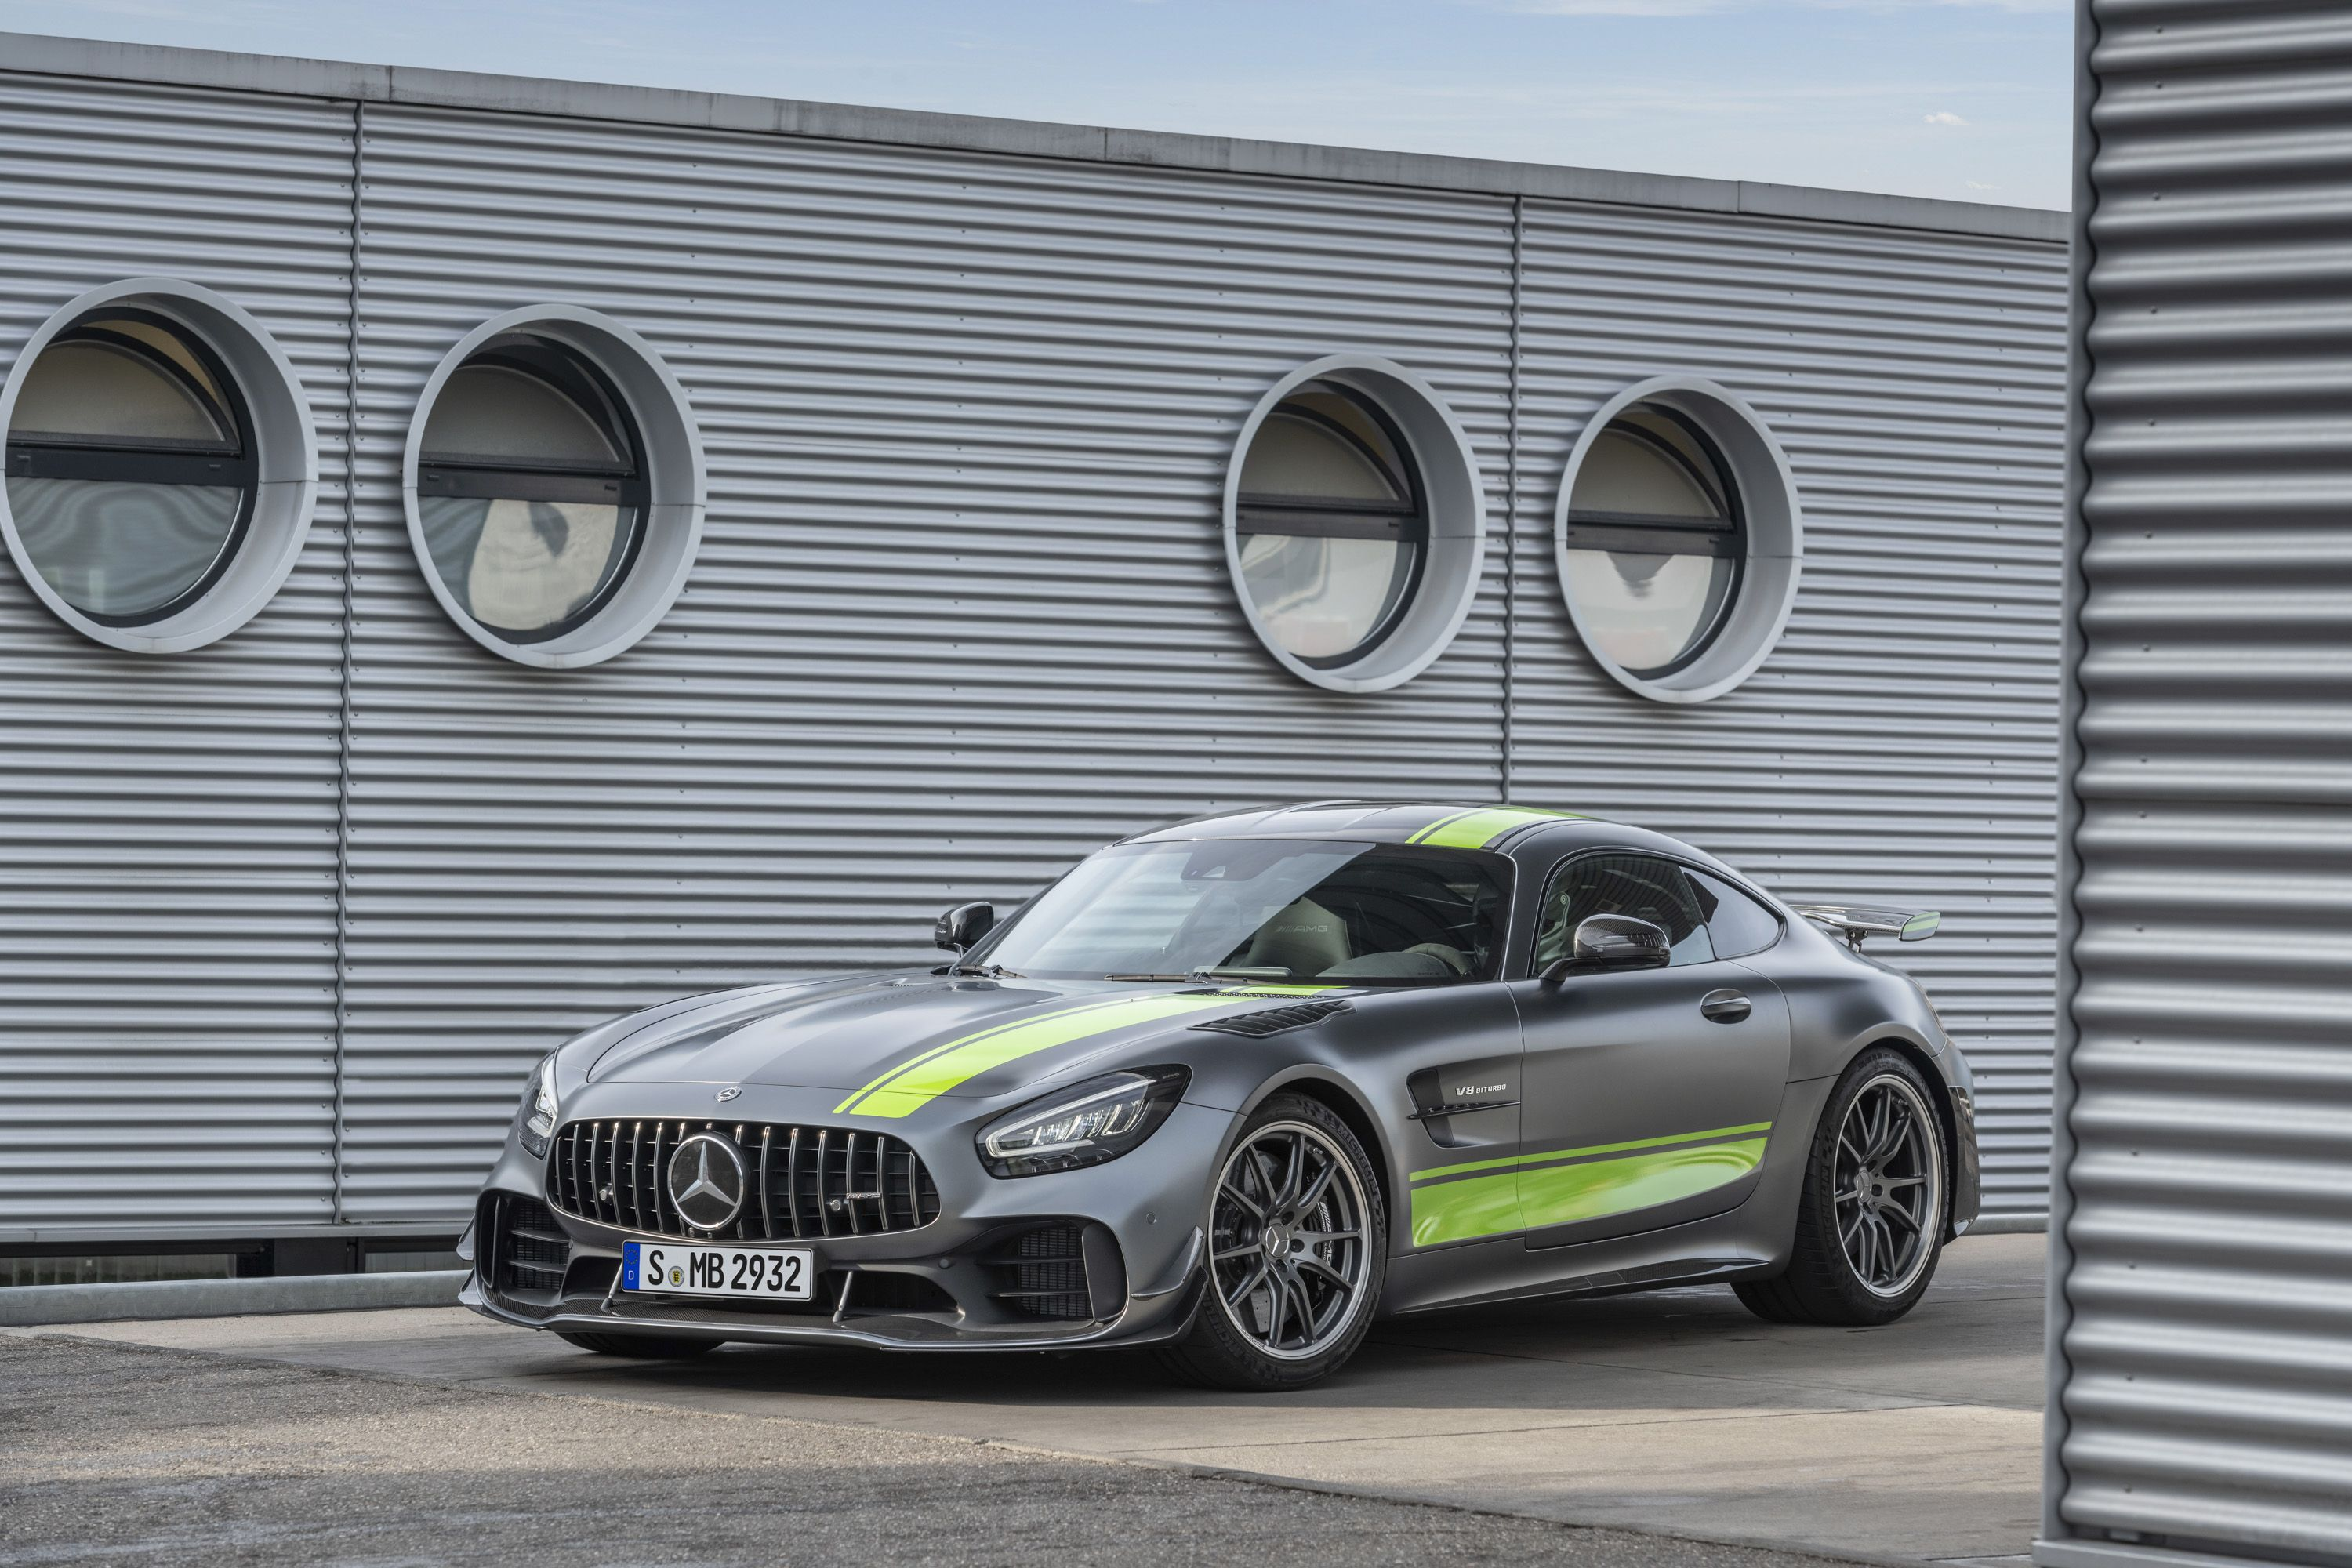 Wallpaper Of The Day 2020 Mercedes Amg Gt R Pro With Images